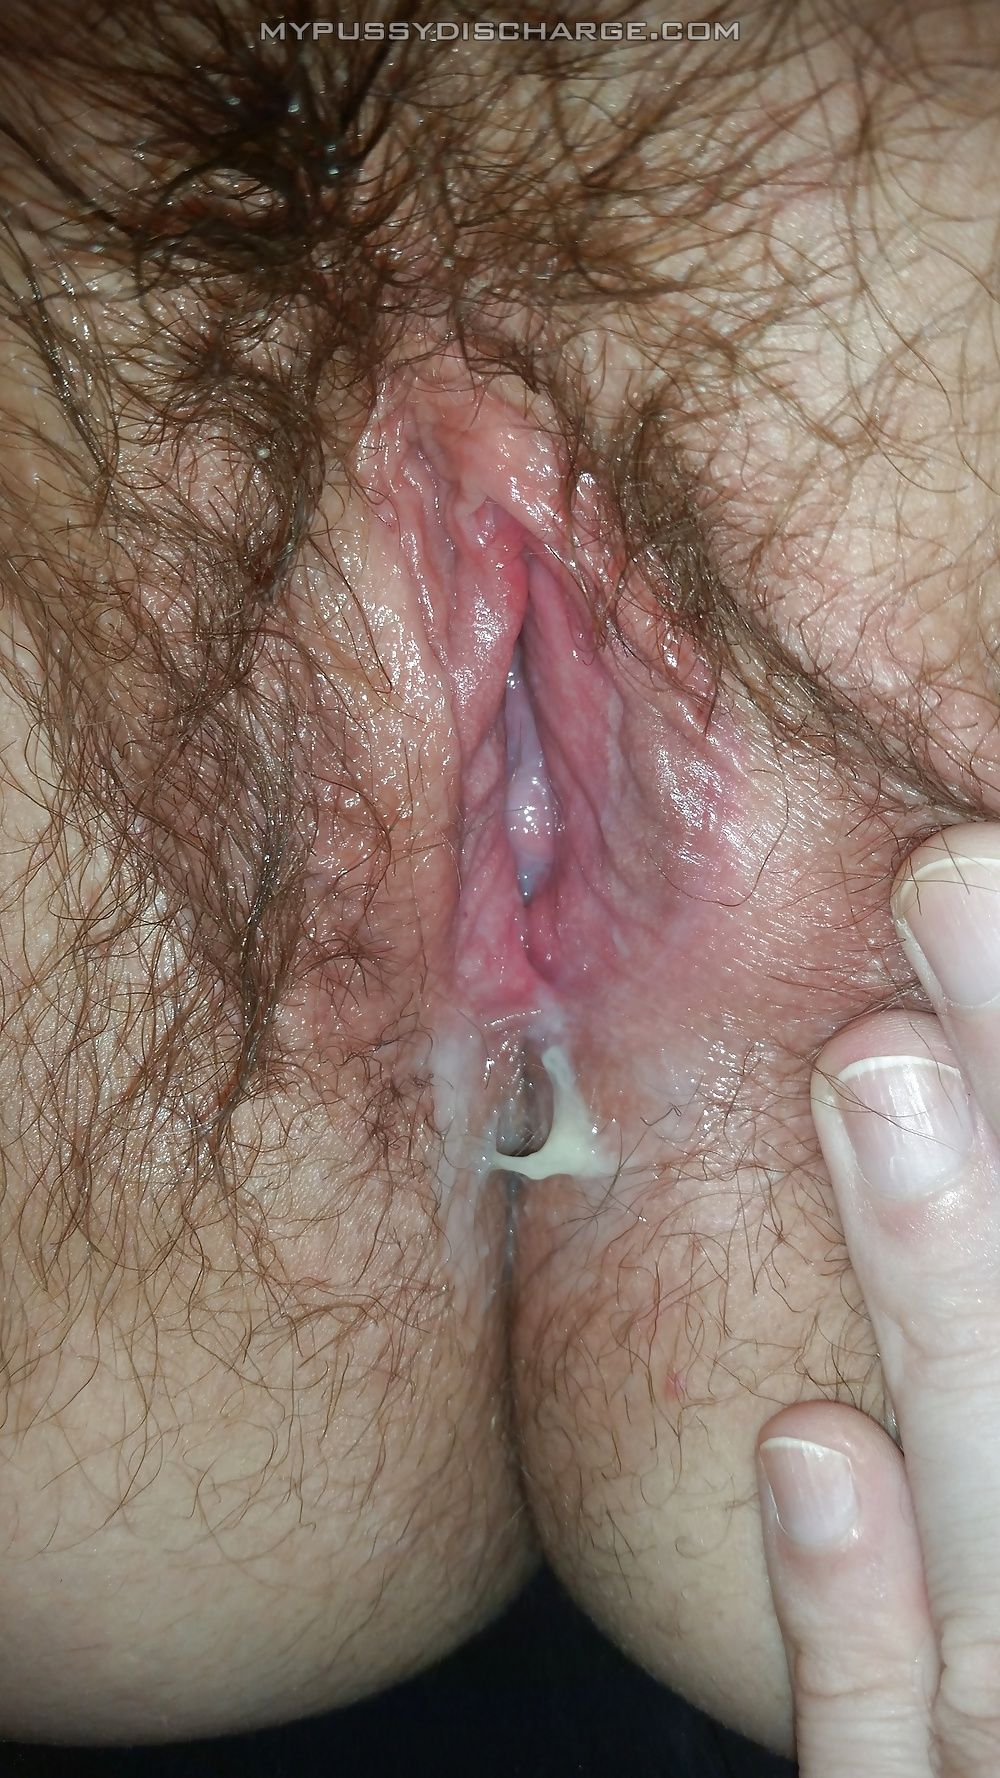 Homemade mature group sex